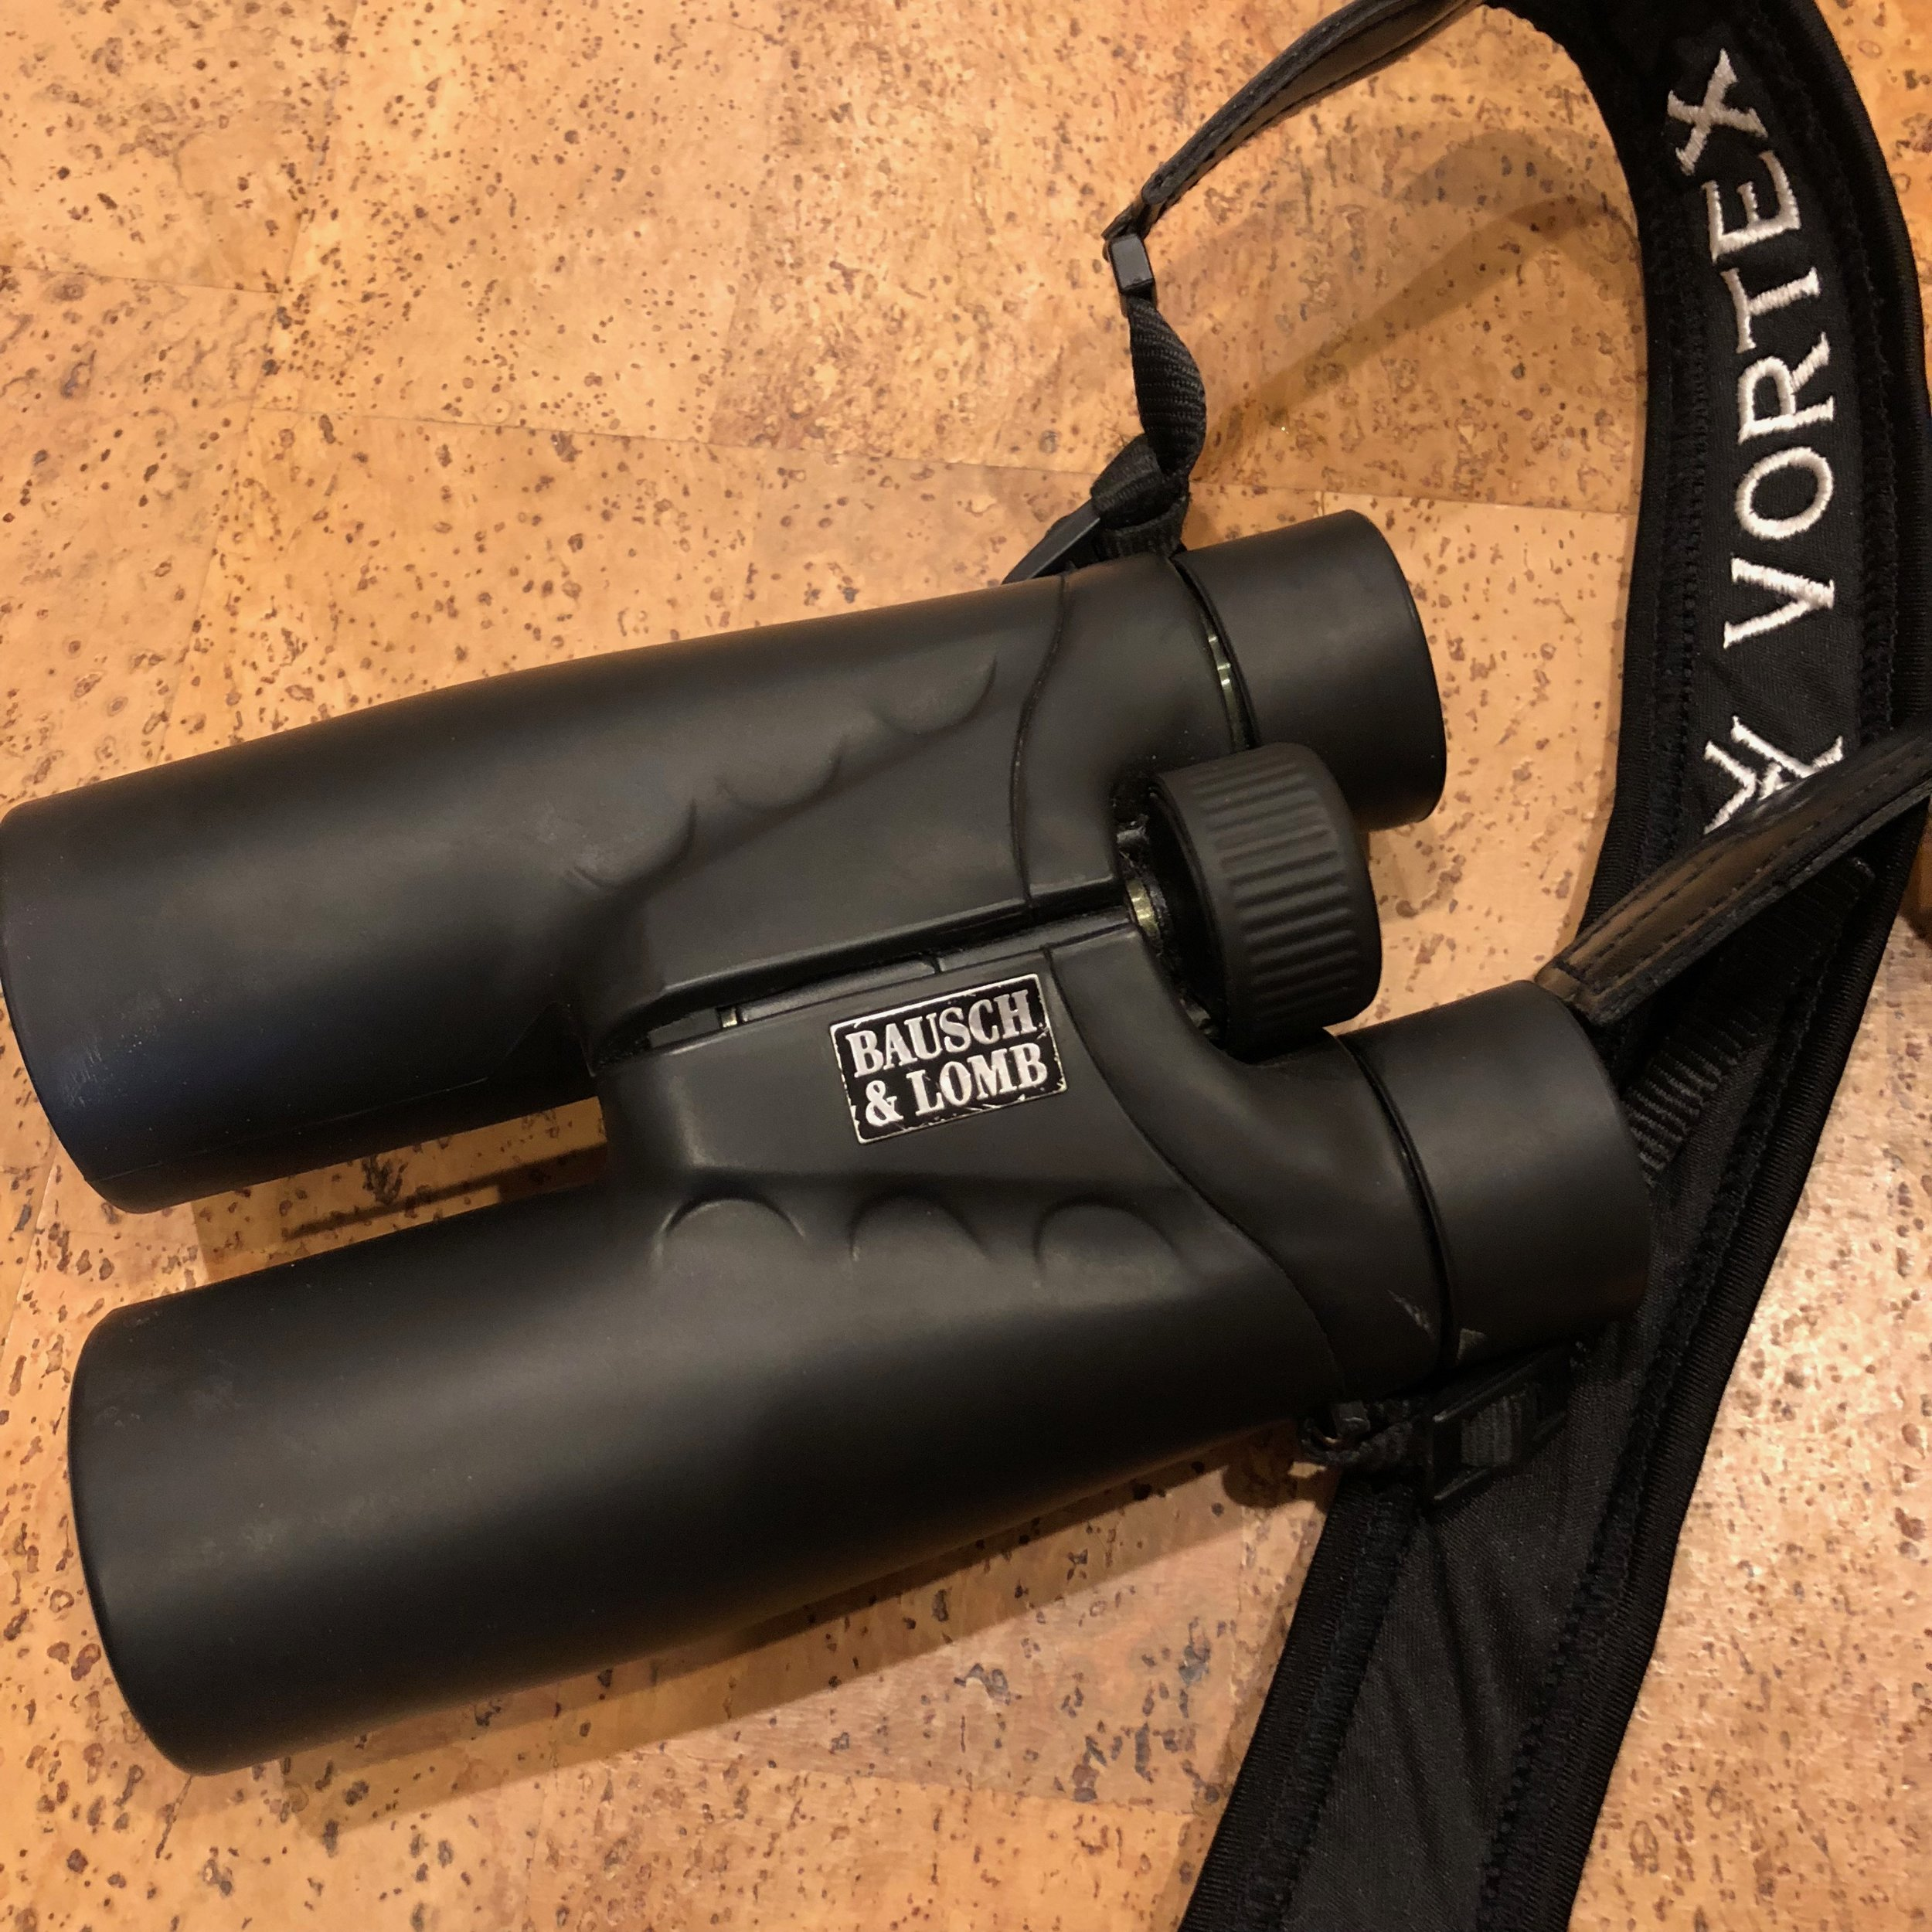 Bausch & Lomb binoculars (Free)   First come first served on these 10x42 binoculars. These would work great for indoor or outdoor archery. Contact Coach Tim at 612-599-5470.